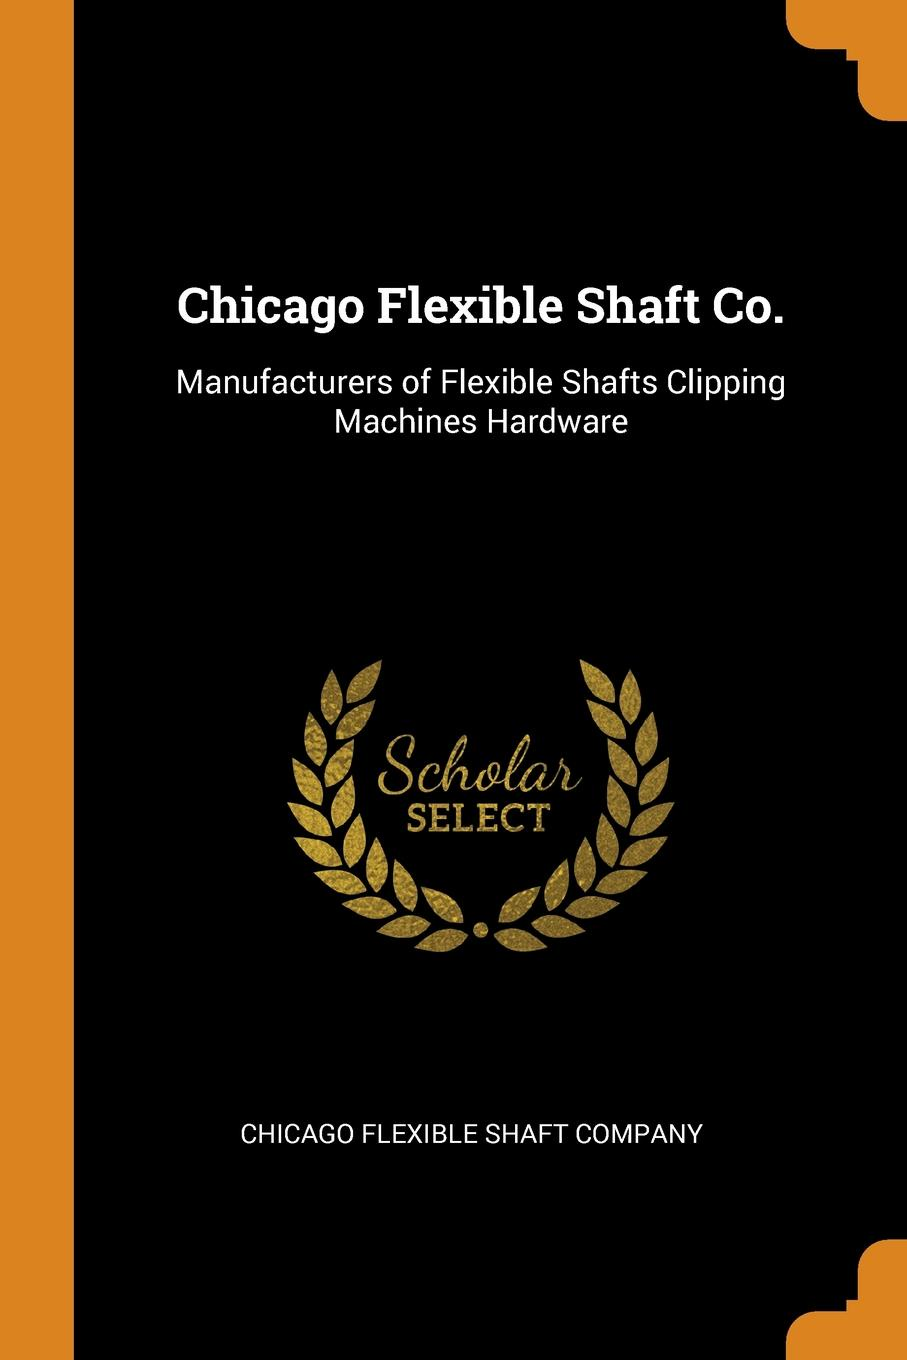 Chicago Flexible Shaft Co. Manufacturers of Flexible Shafts Clipping Machines Hardware